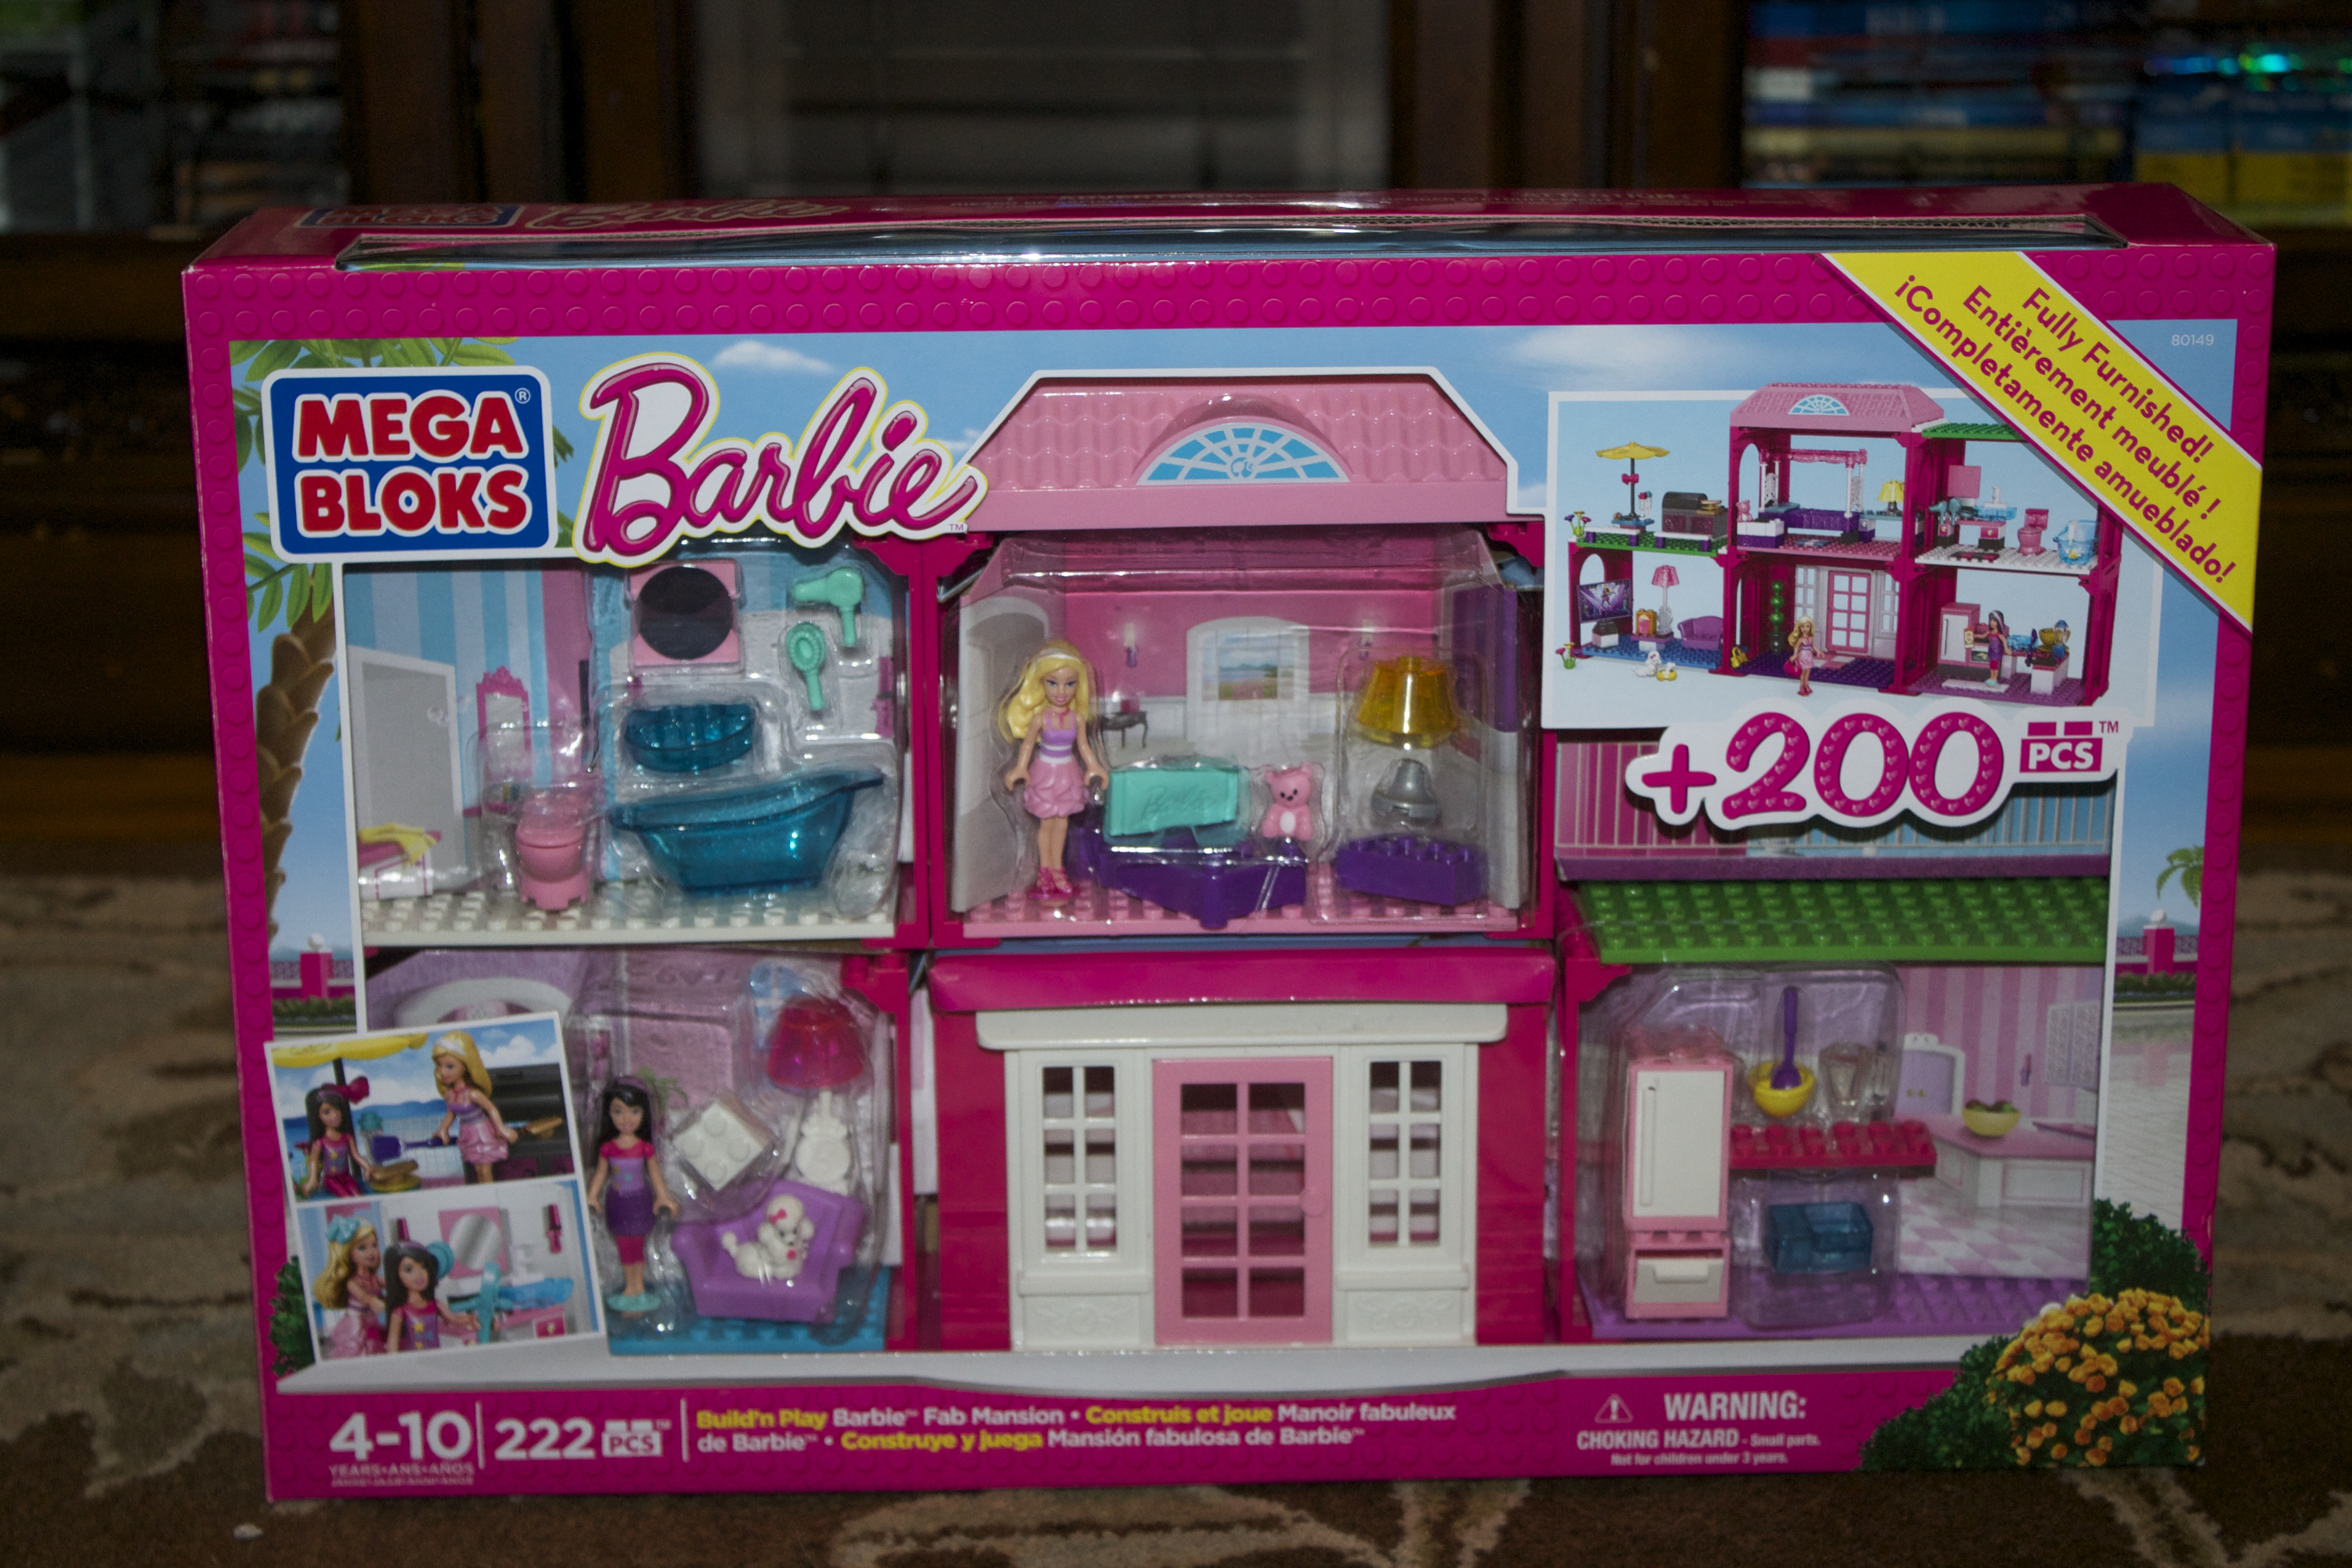 Mega Bloks Barbie Build N Play Fab Mansion Interiors Inside Ideas Interiors design about Everything [magnanprojects.com]